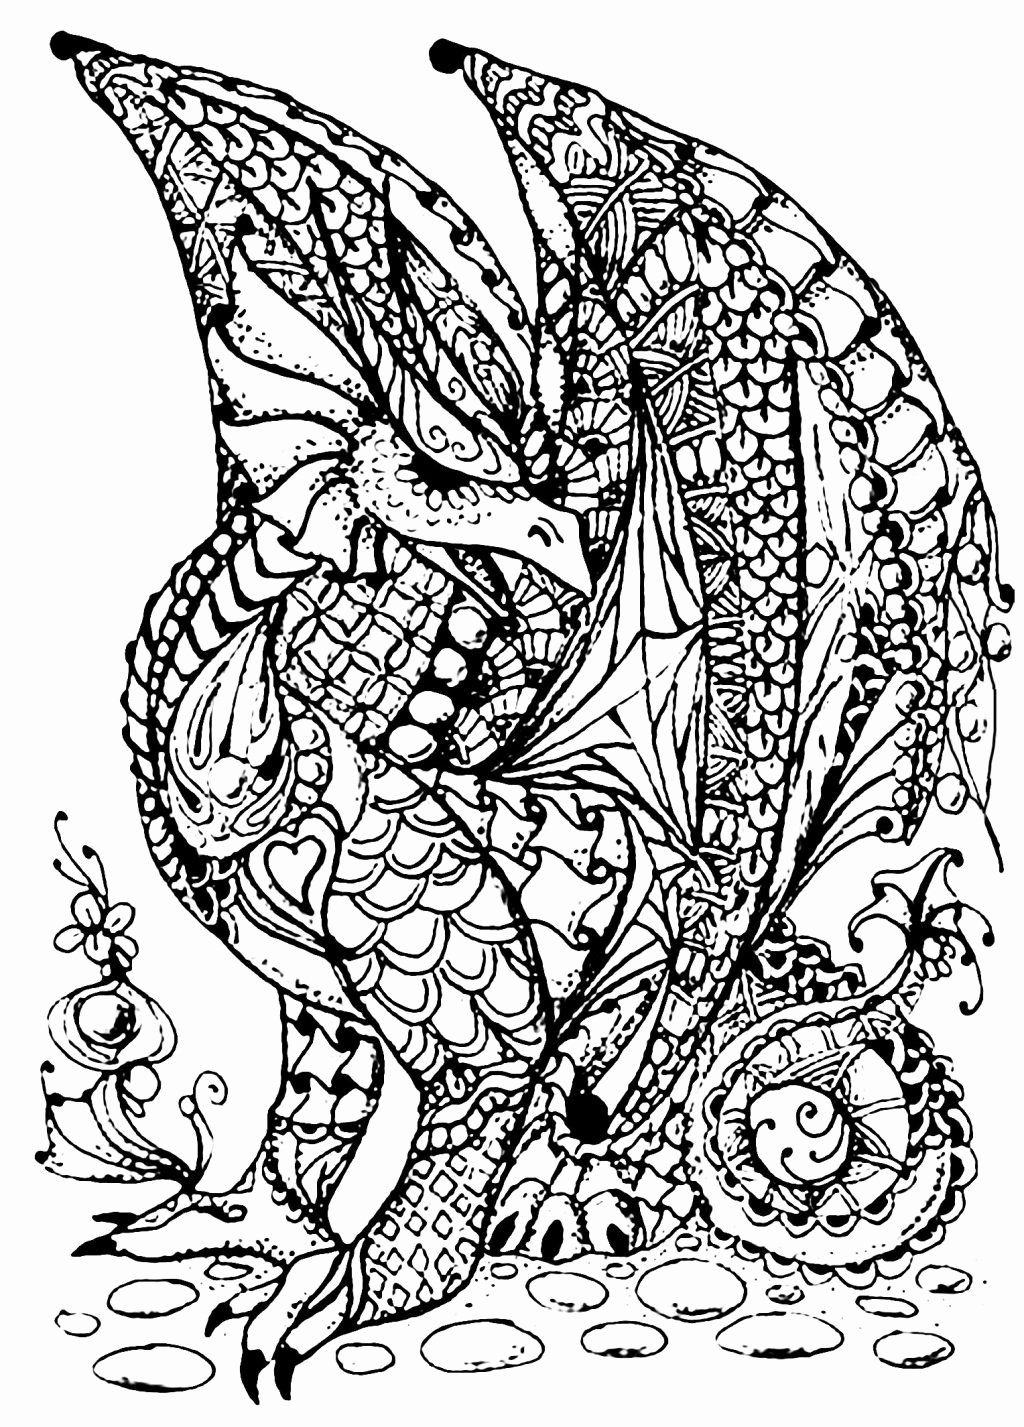 - Dragon Art Coloring Pages In 2020 Dragon Coloring Page, Mandala